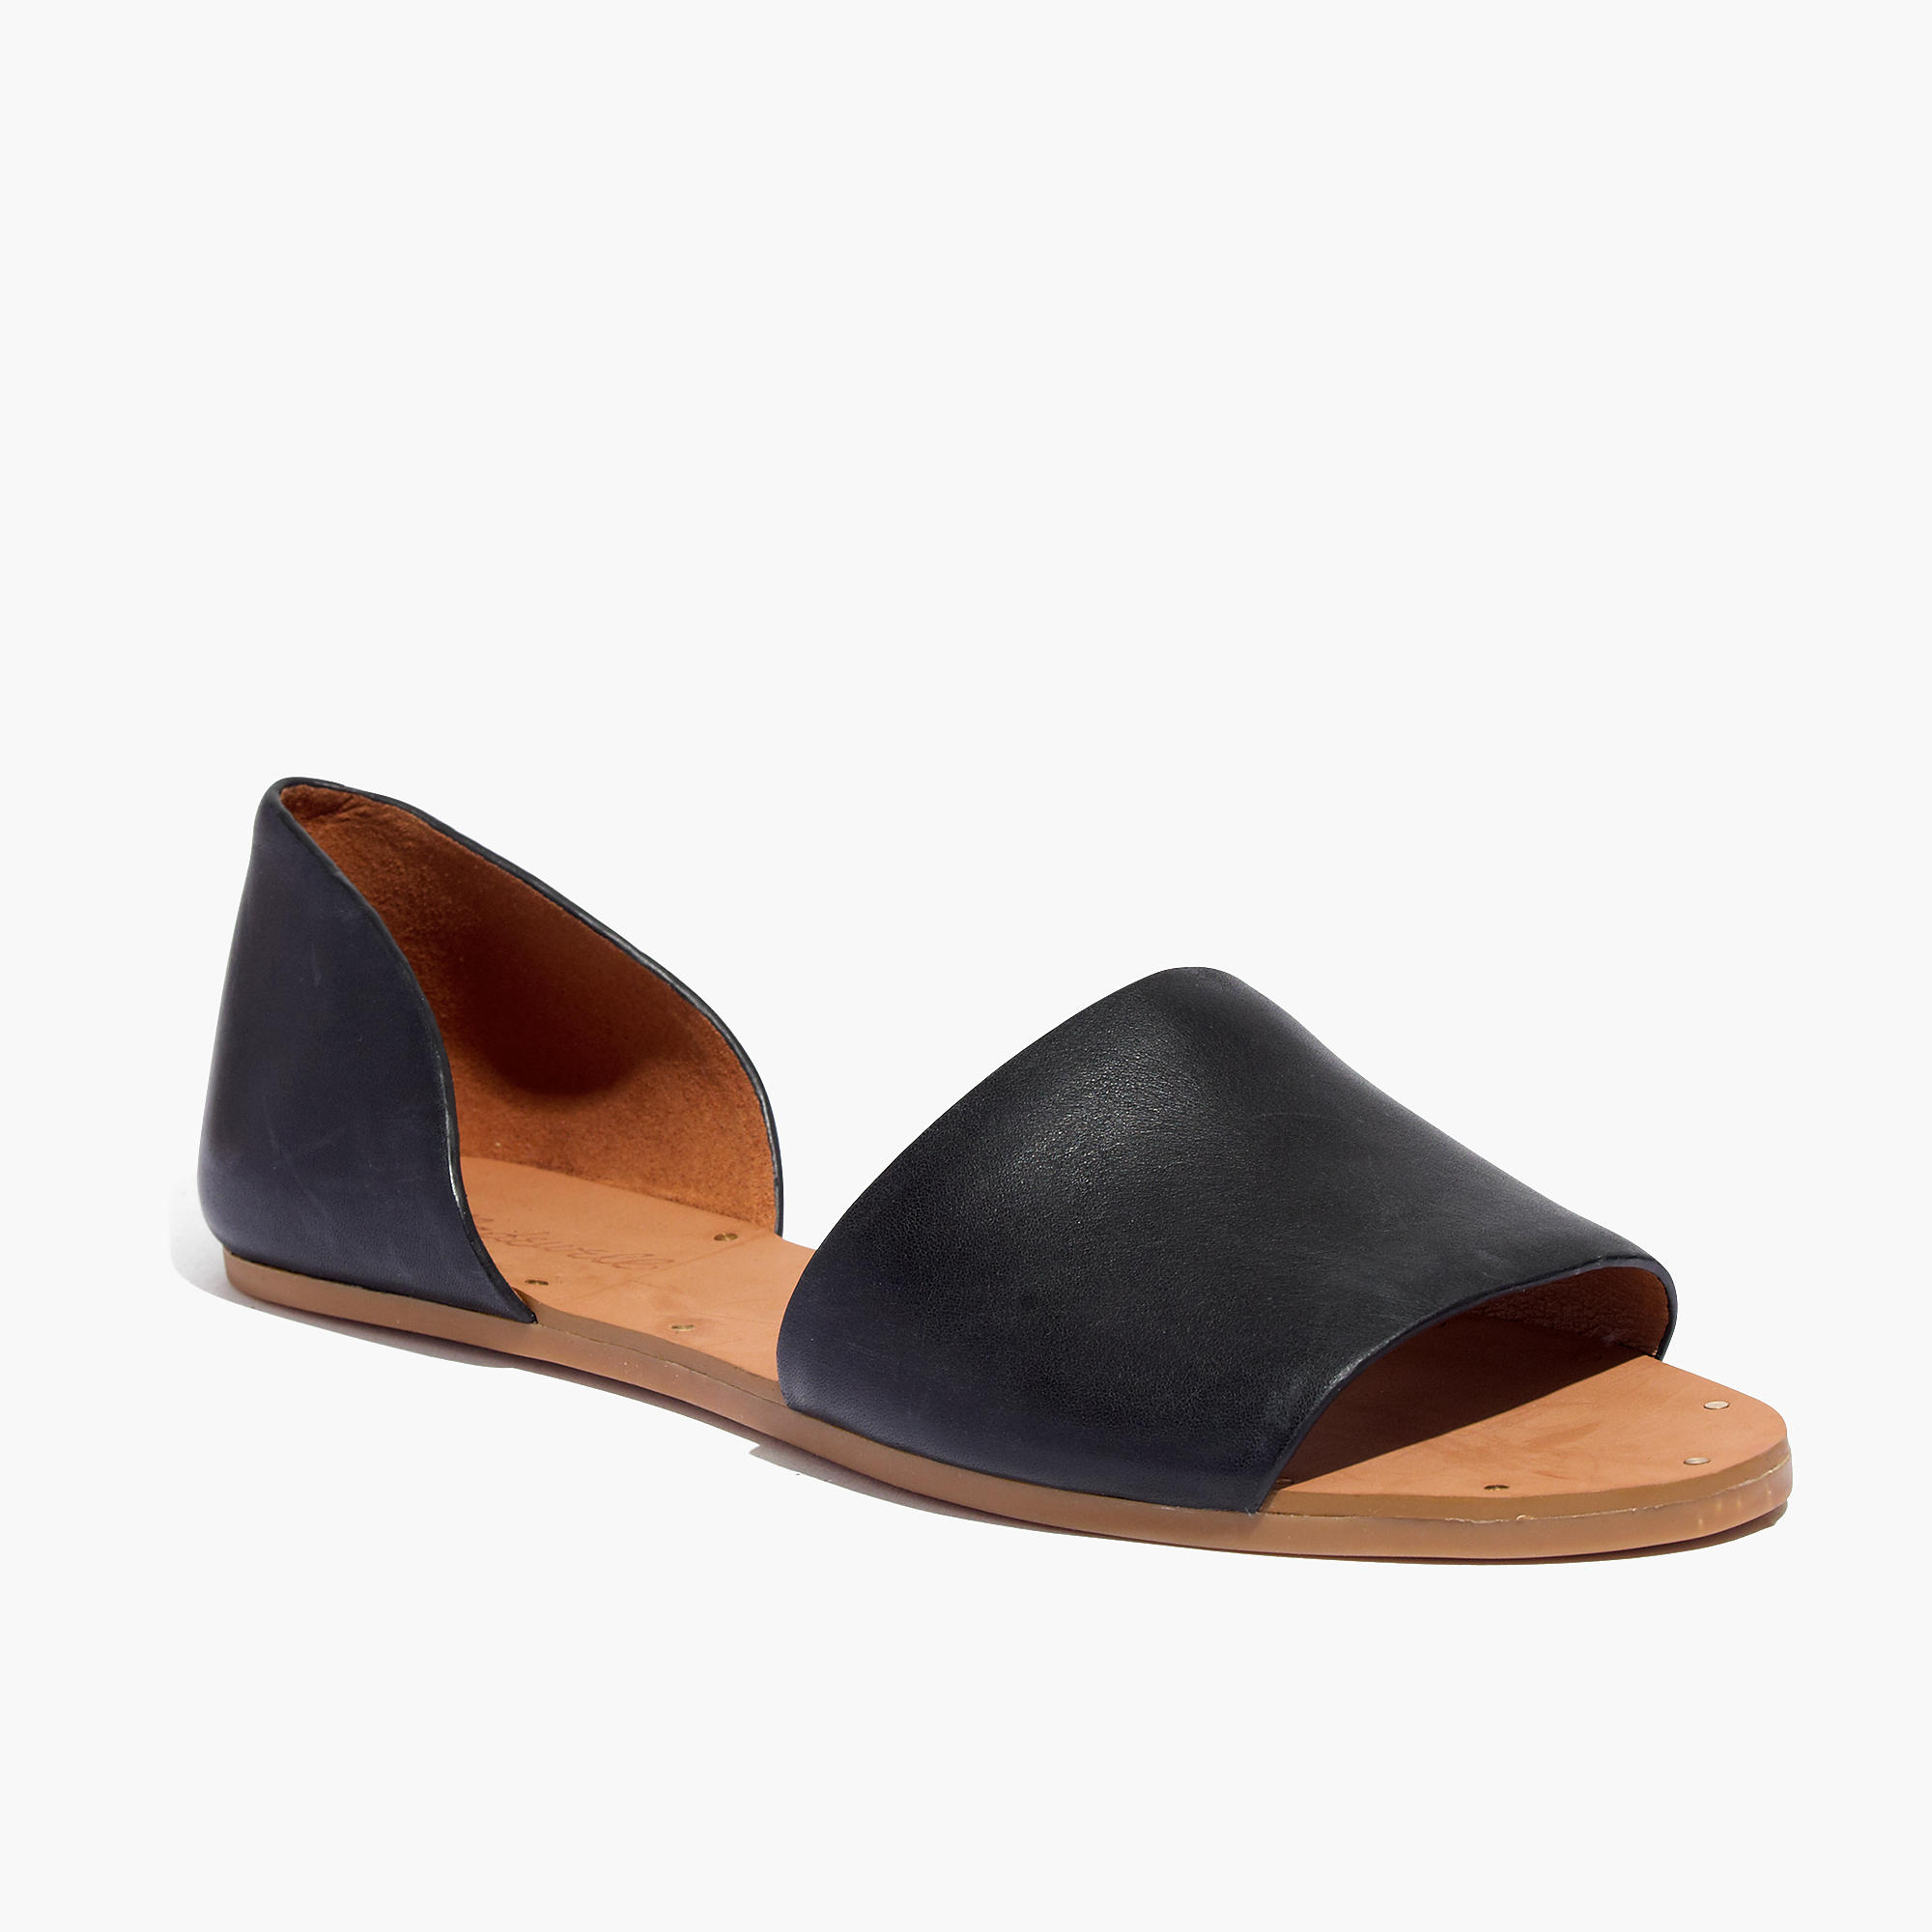 Womens sandals reddit - I Also Own These But